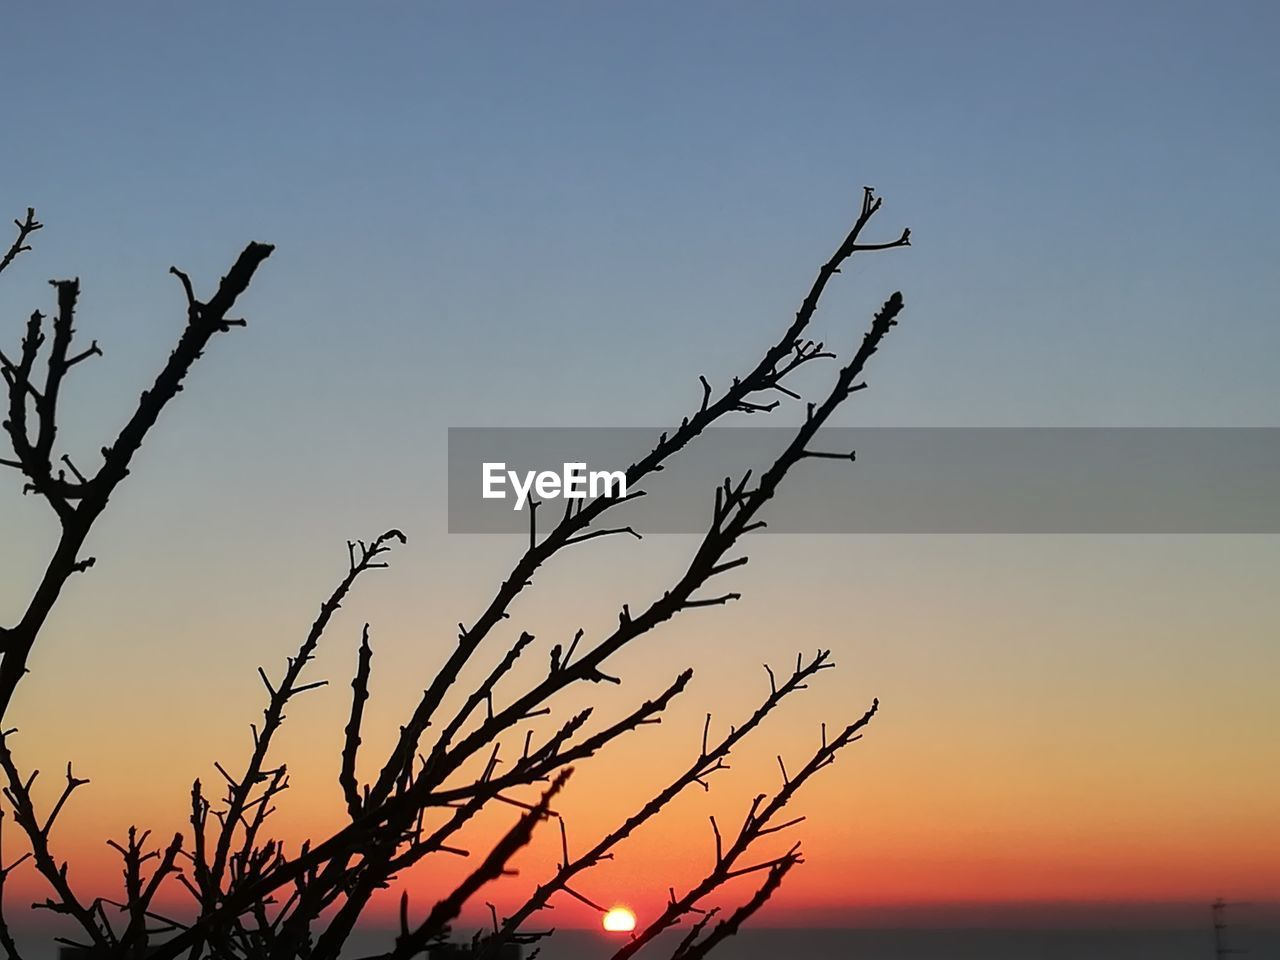 sky, sunset, beauty in nature, silhouette, tranquility, plant, scenics - nature, tree, tranquil scene, nature, no people, bare tree, branch, orange color, clear sky, non-urban scene, outdoors, growth, idyllic, low angle view, dead plant